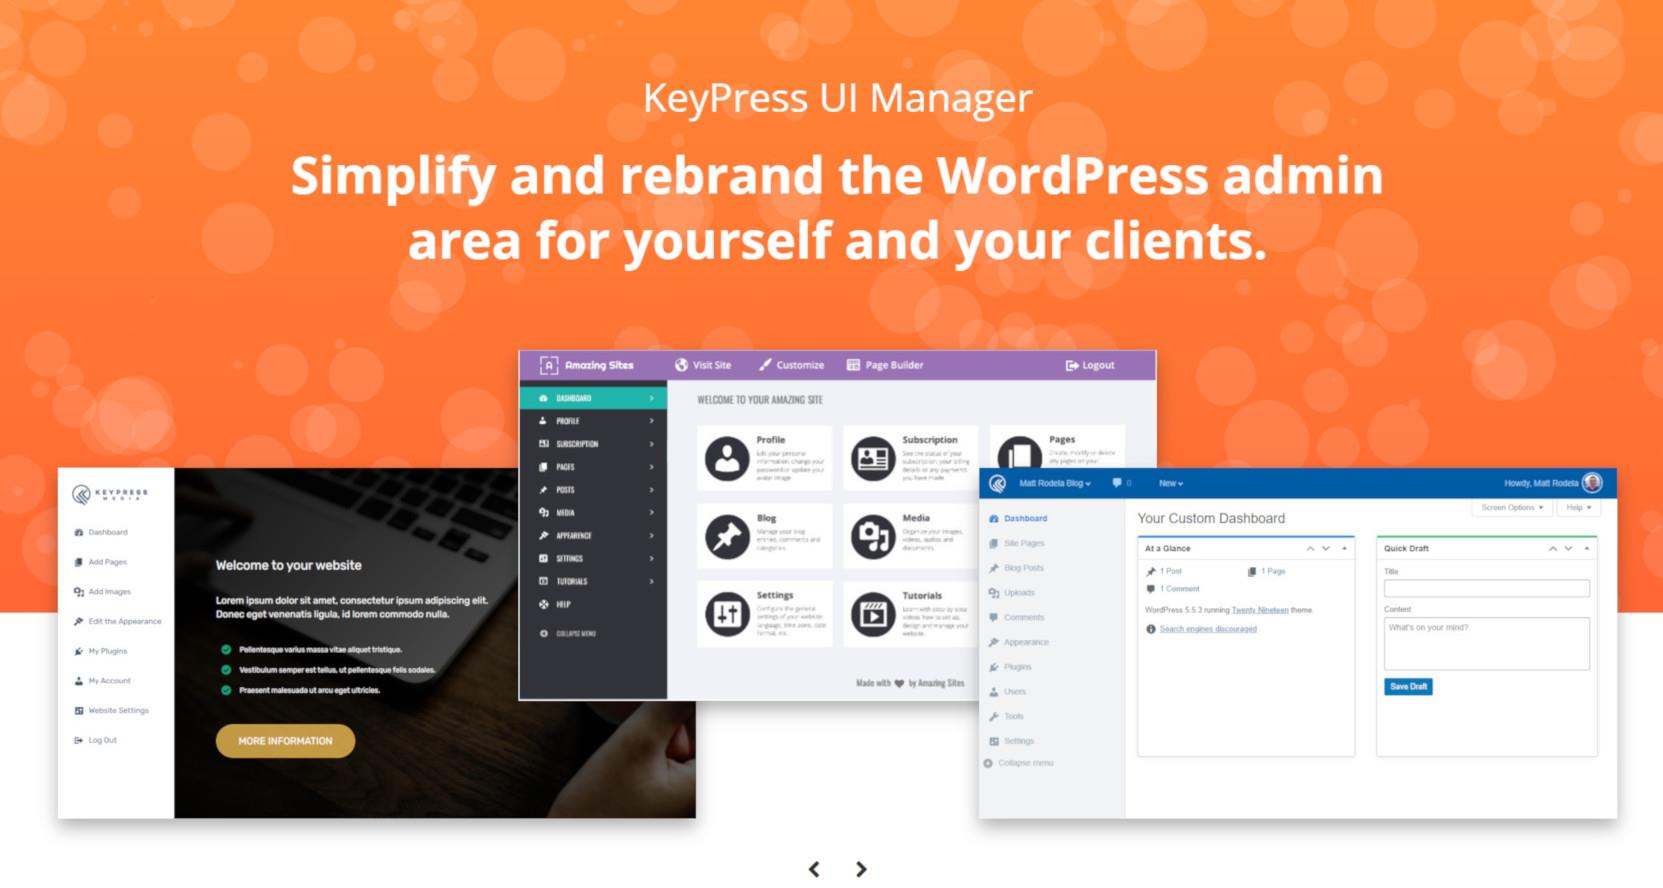 UI Manager